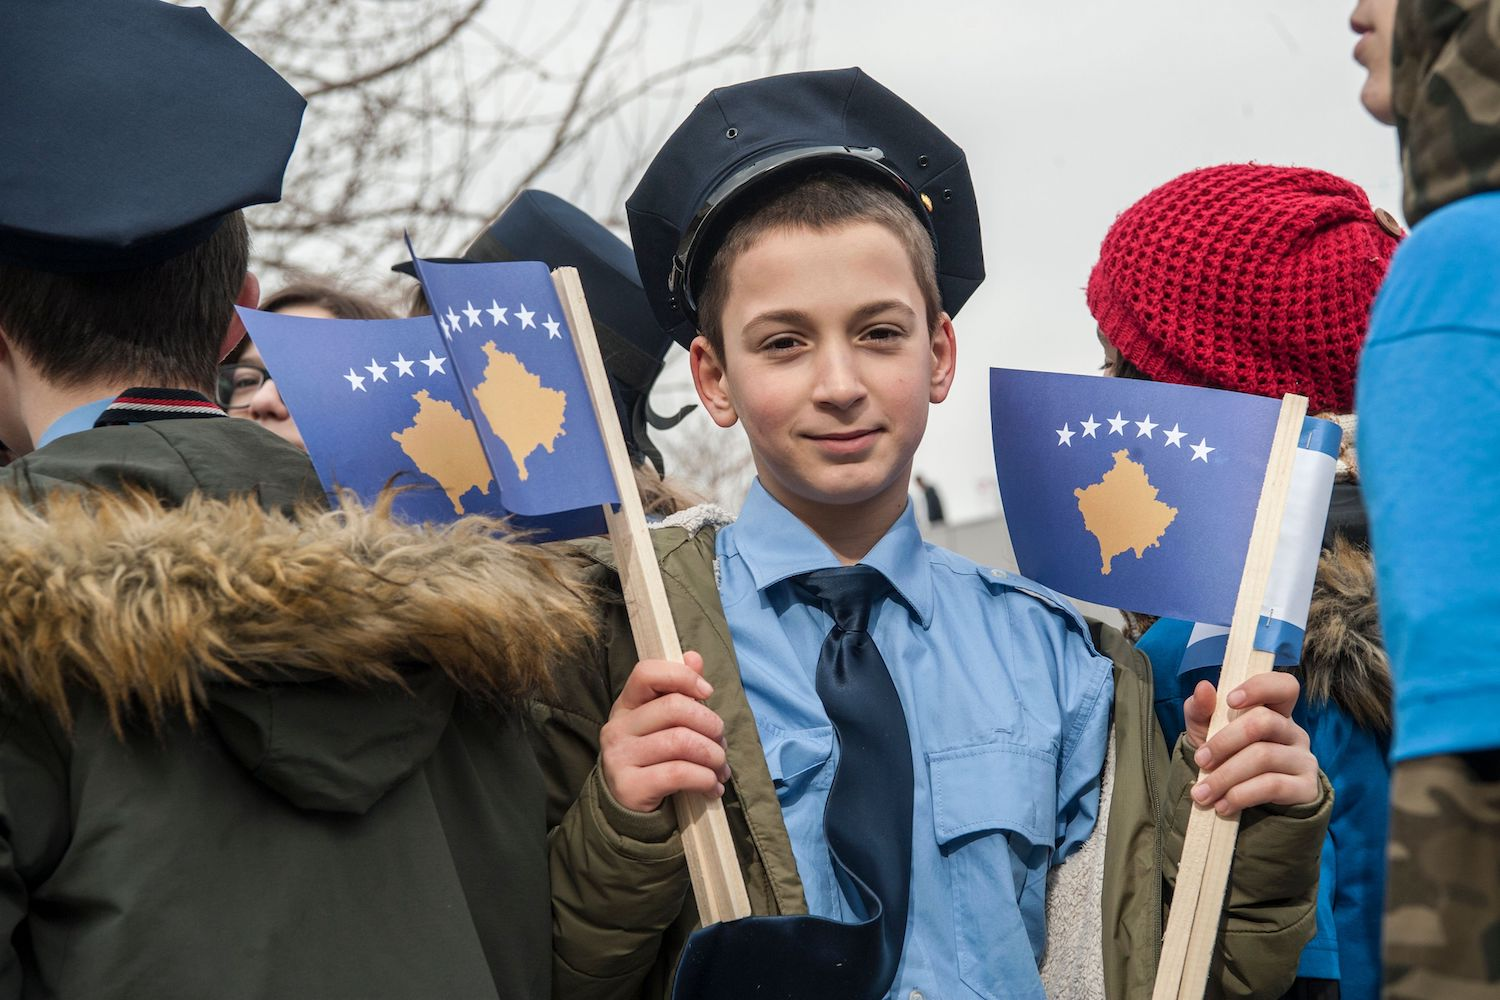 TOPSHOT - A young Kosovar boy dressed as police officer holds Kosovo flags in Pristina on February 16, 2018 on the eve of the celebrations of the 10th anniversary of Kosovo independence.  Kosovo marks the 10th anniversary of its independence from Serbia on February 17. / AFP PHOTO / Armend NIMANI        (Photo credit should read ARMEND NIMANI/AFP/Getty Images)